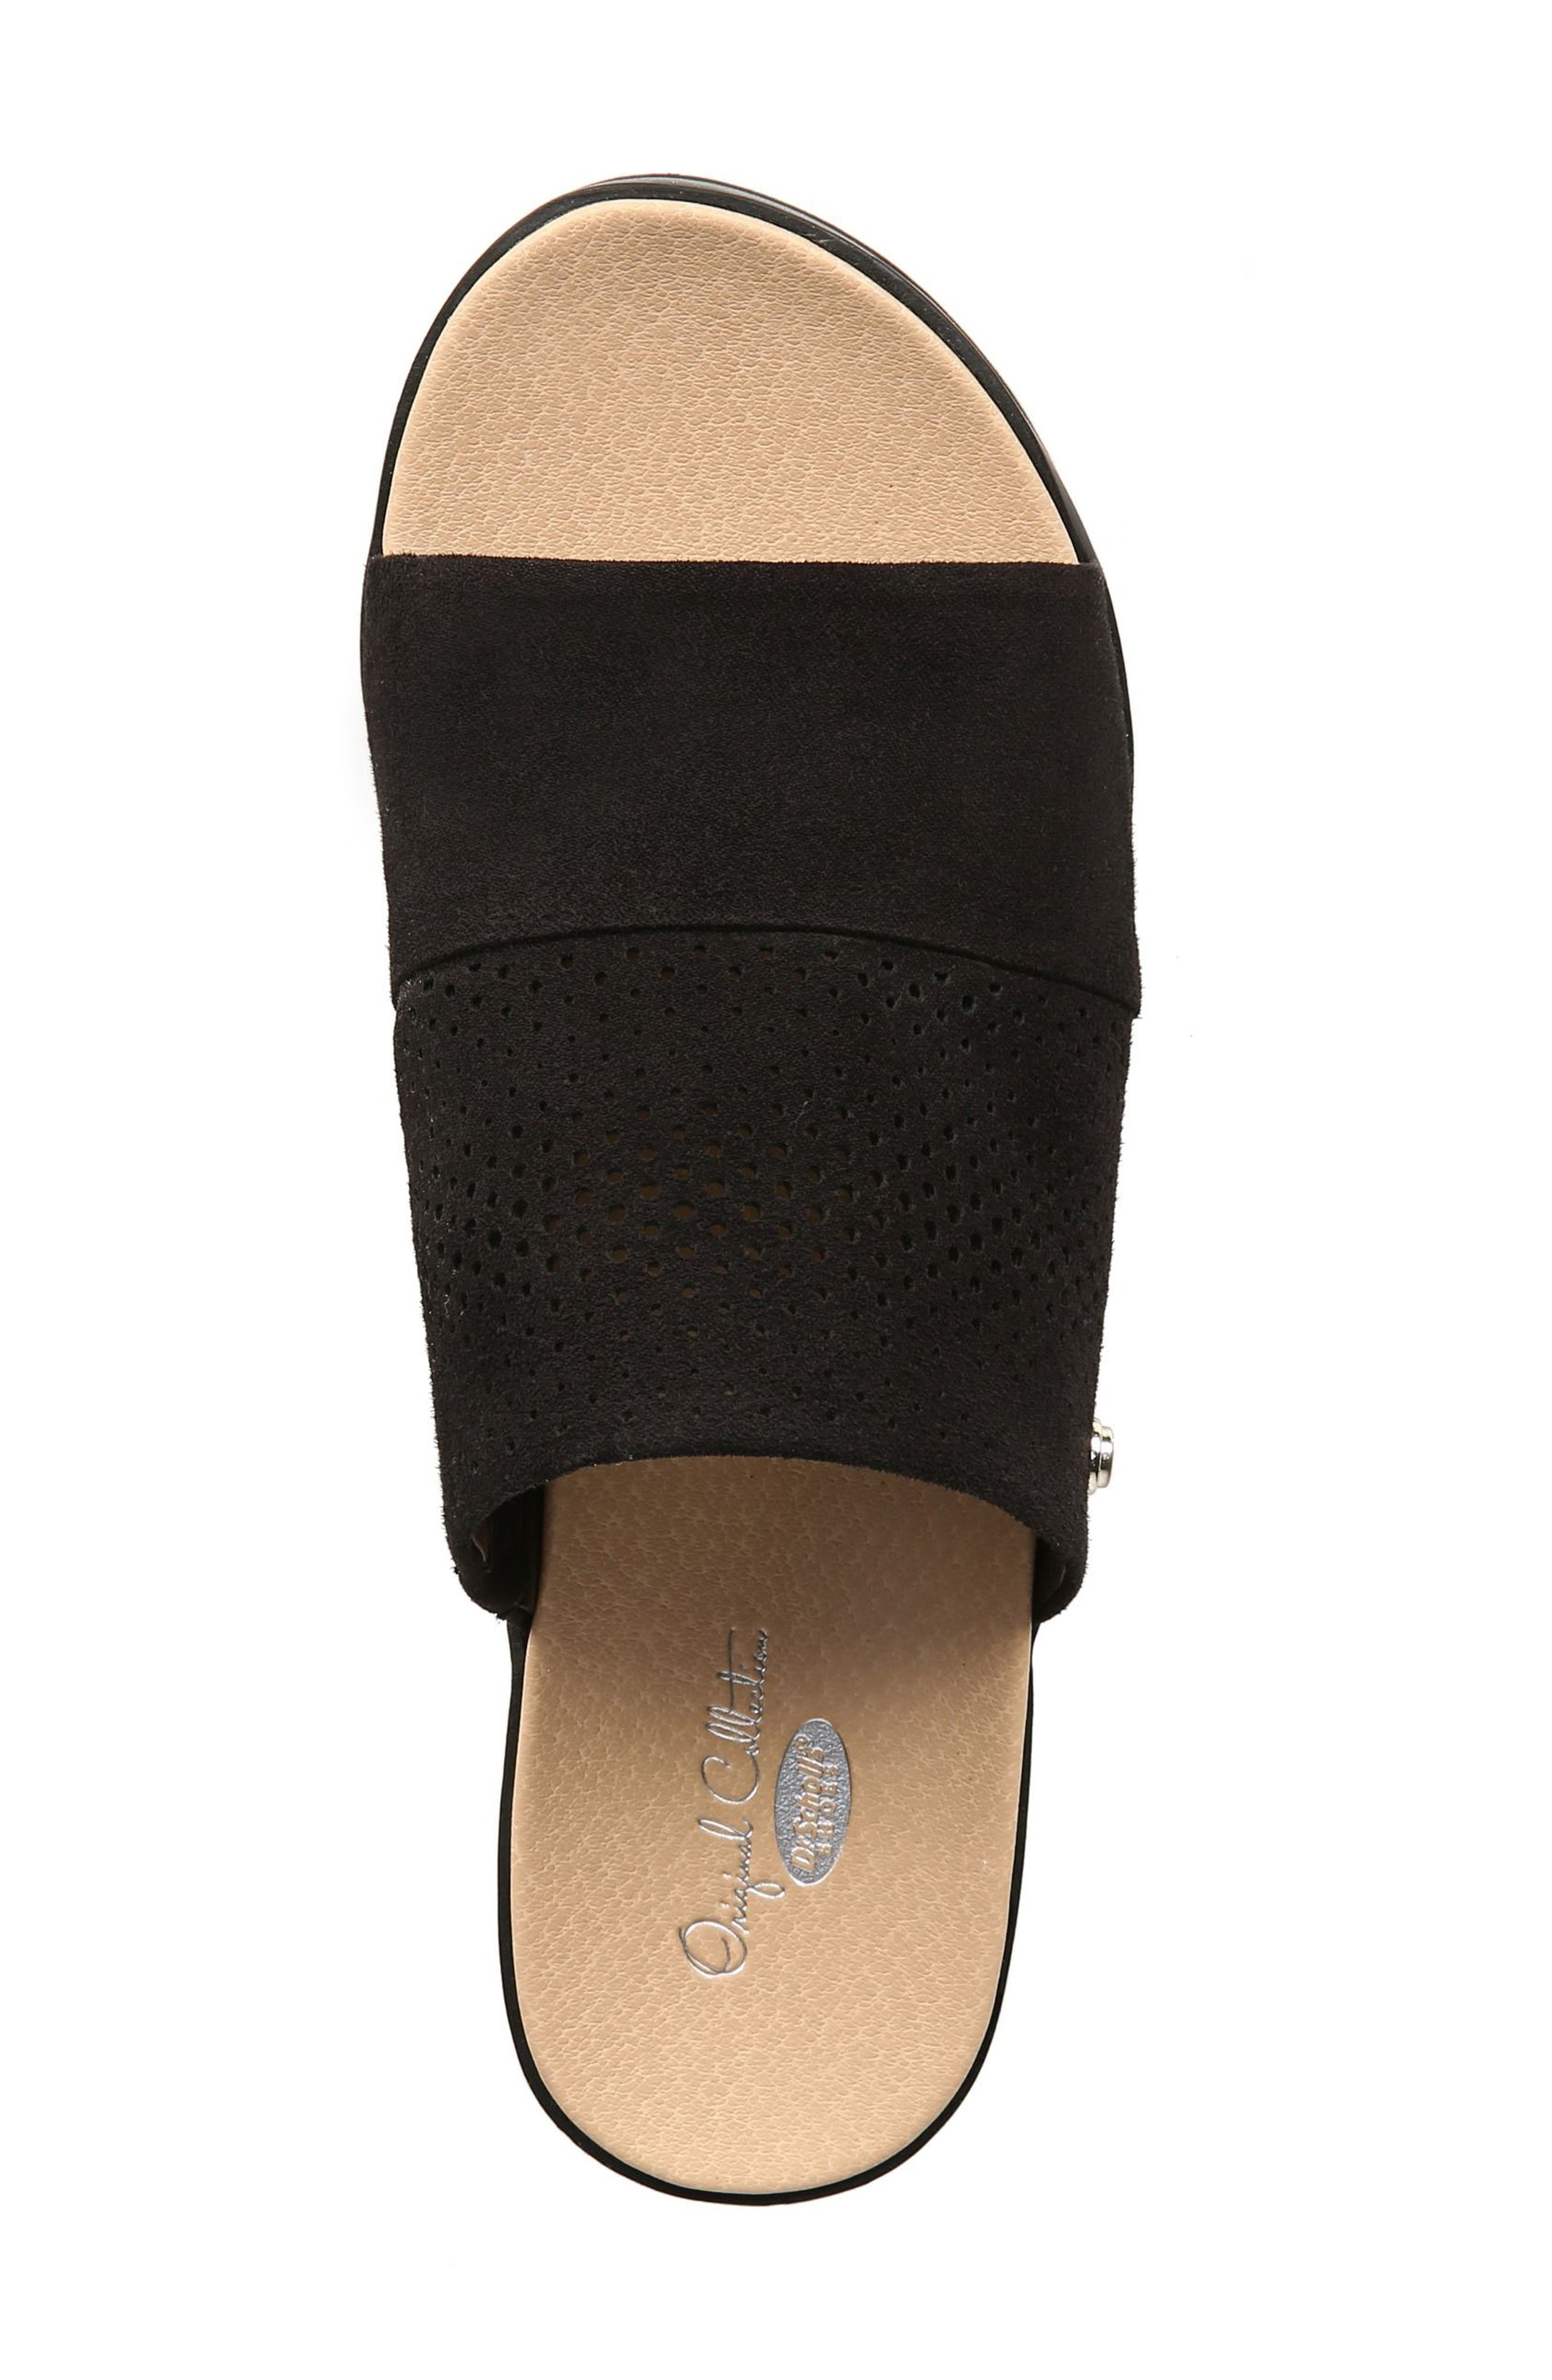 Collins Platform Sandal,                             Alternate thumbnail 5, color,                             BLACK FABRIC